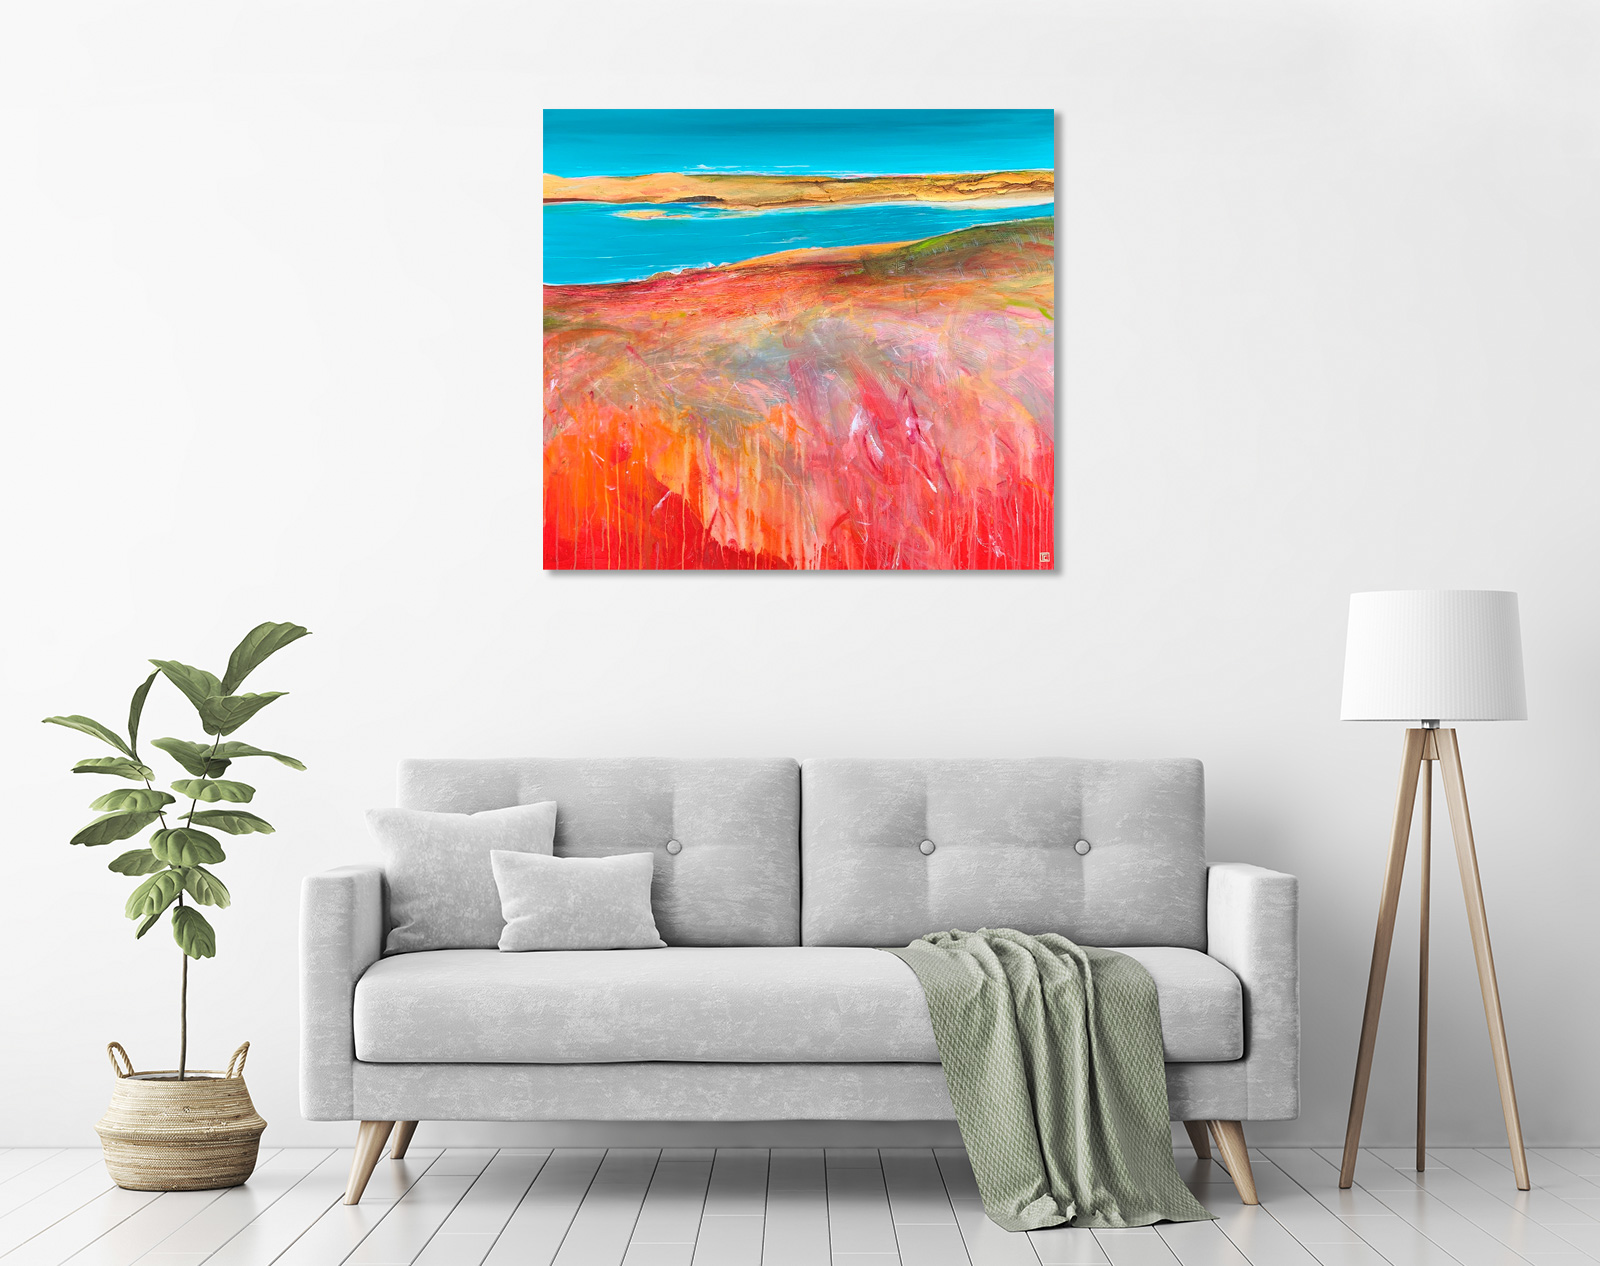 Tidal Inlet in a room